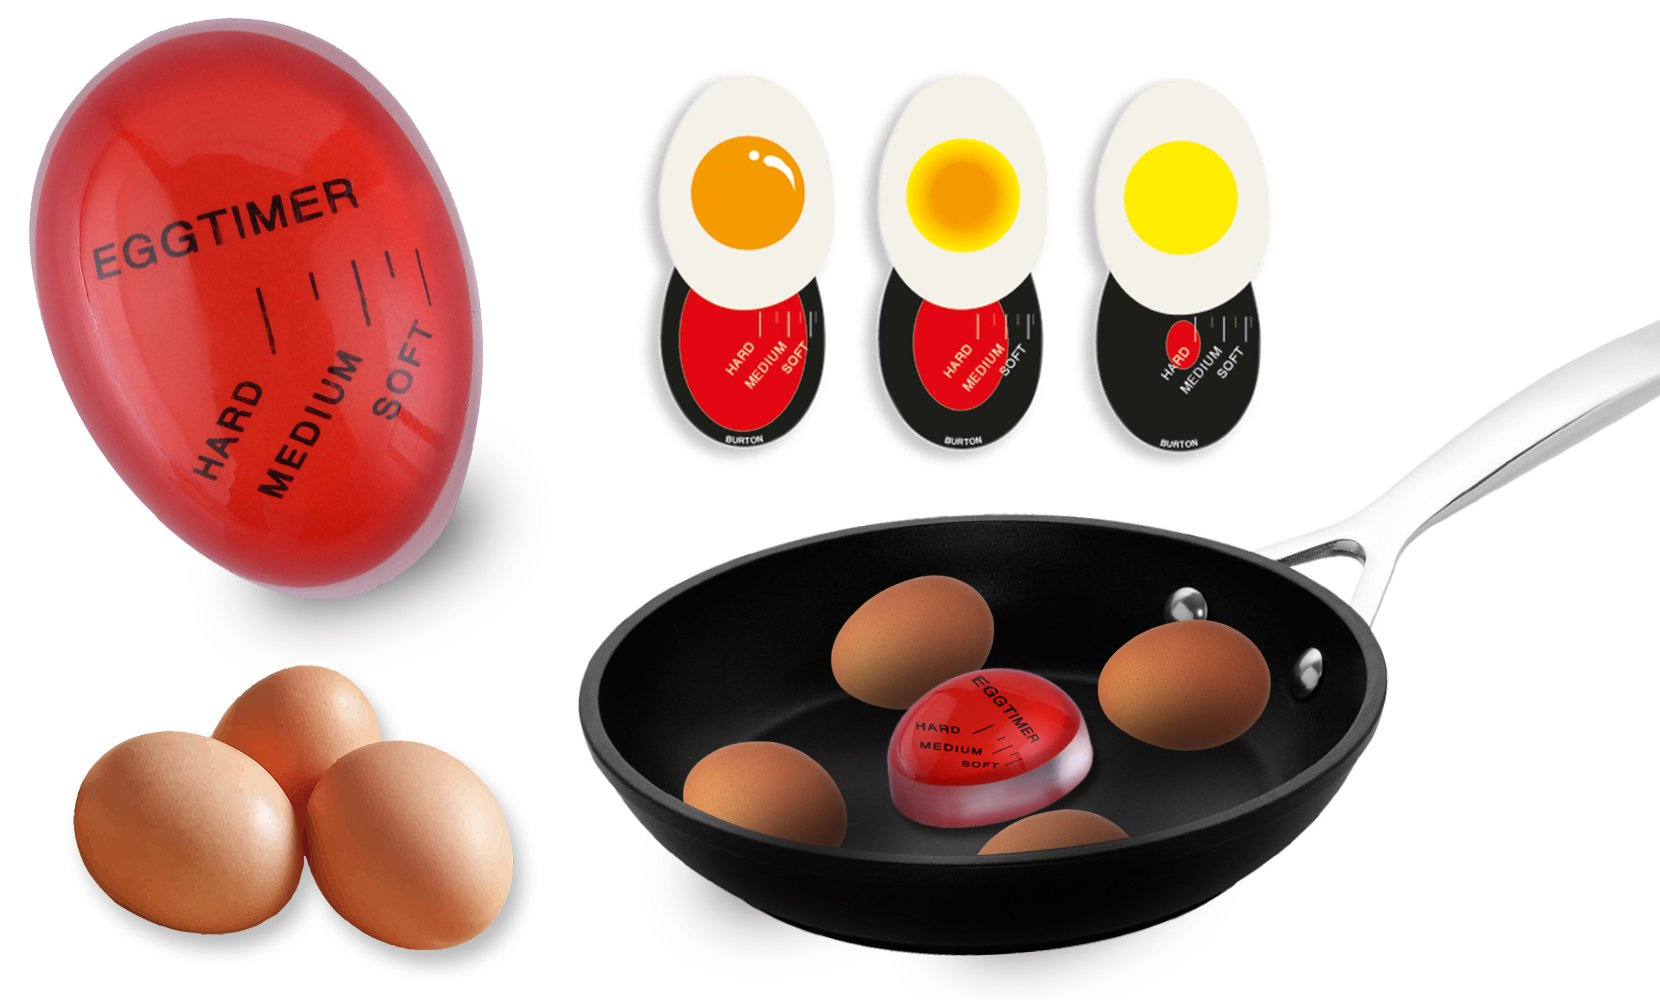 Heat Sensitive Color Changing Perfect Egg Timer for Soft and Hard Boiled Eggs